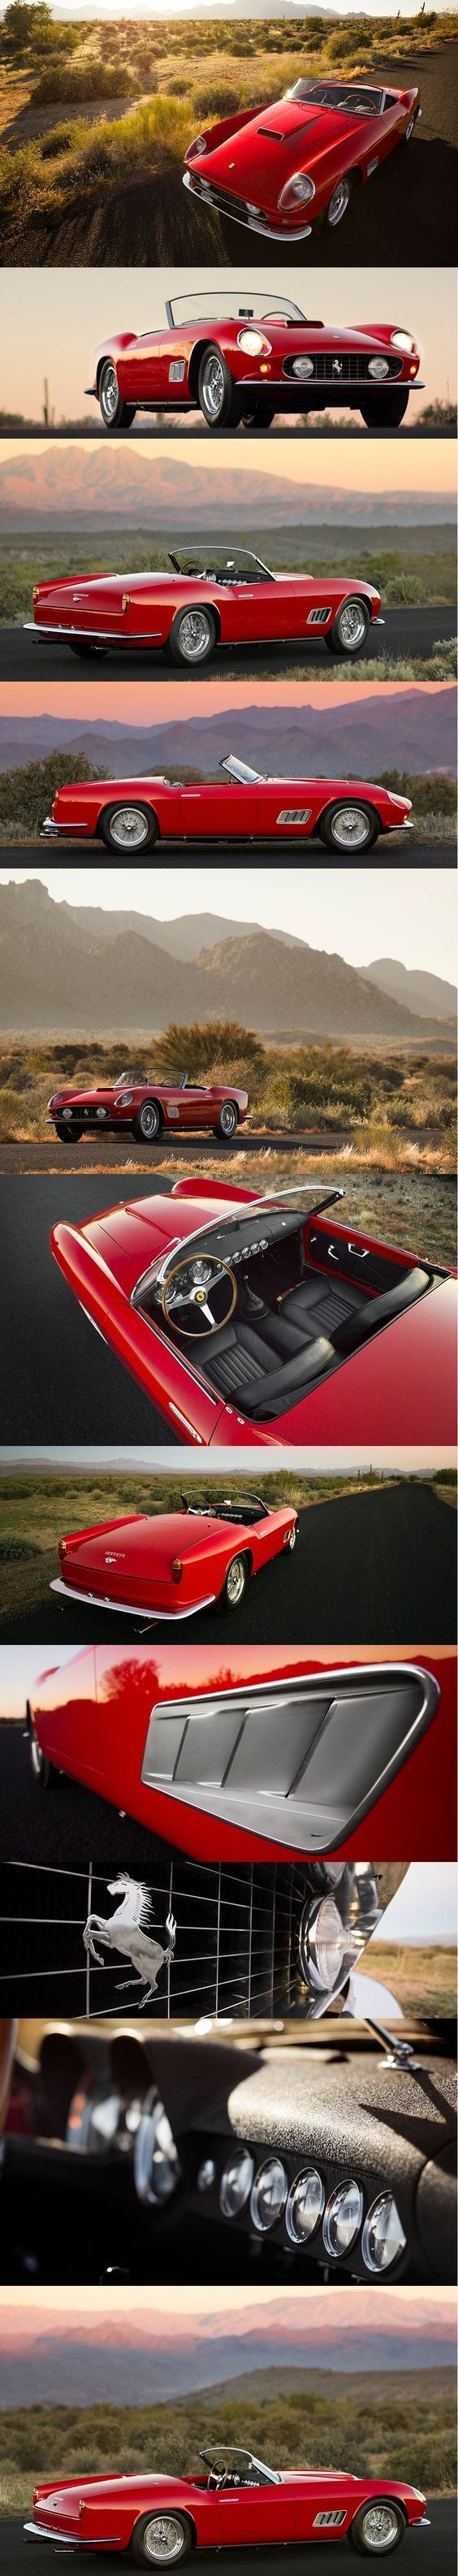 1637 Best Wheels Images On Pinterest Vintage Cars And Ferrari California Fuse Box 1958 250 Gt Spider The Most Beautifull Car Ever Build